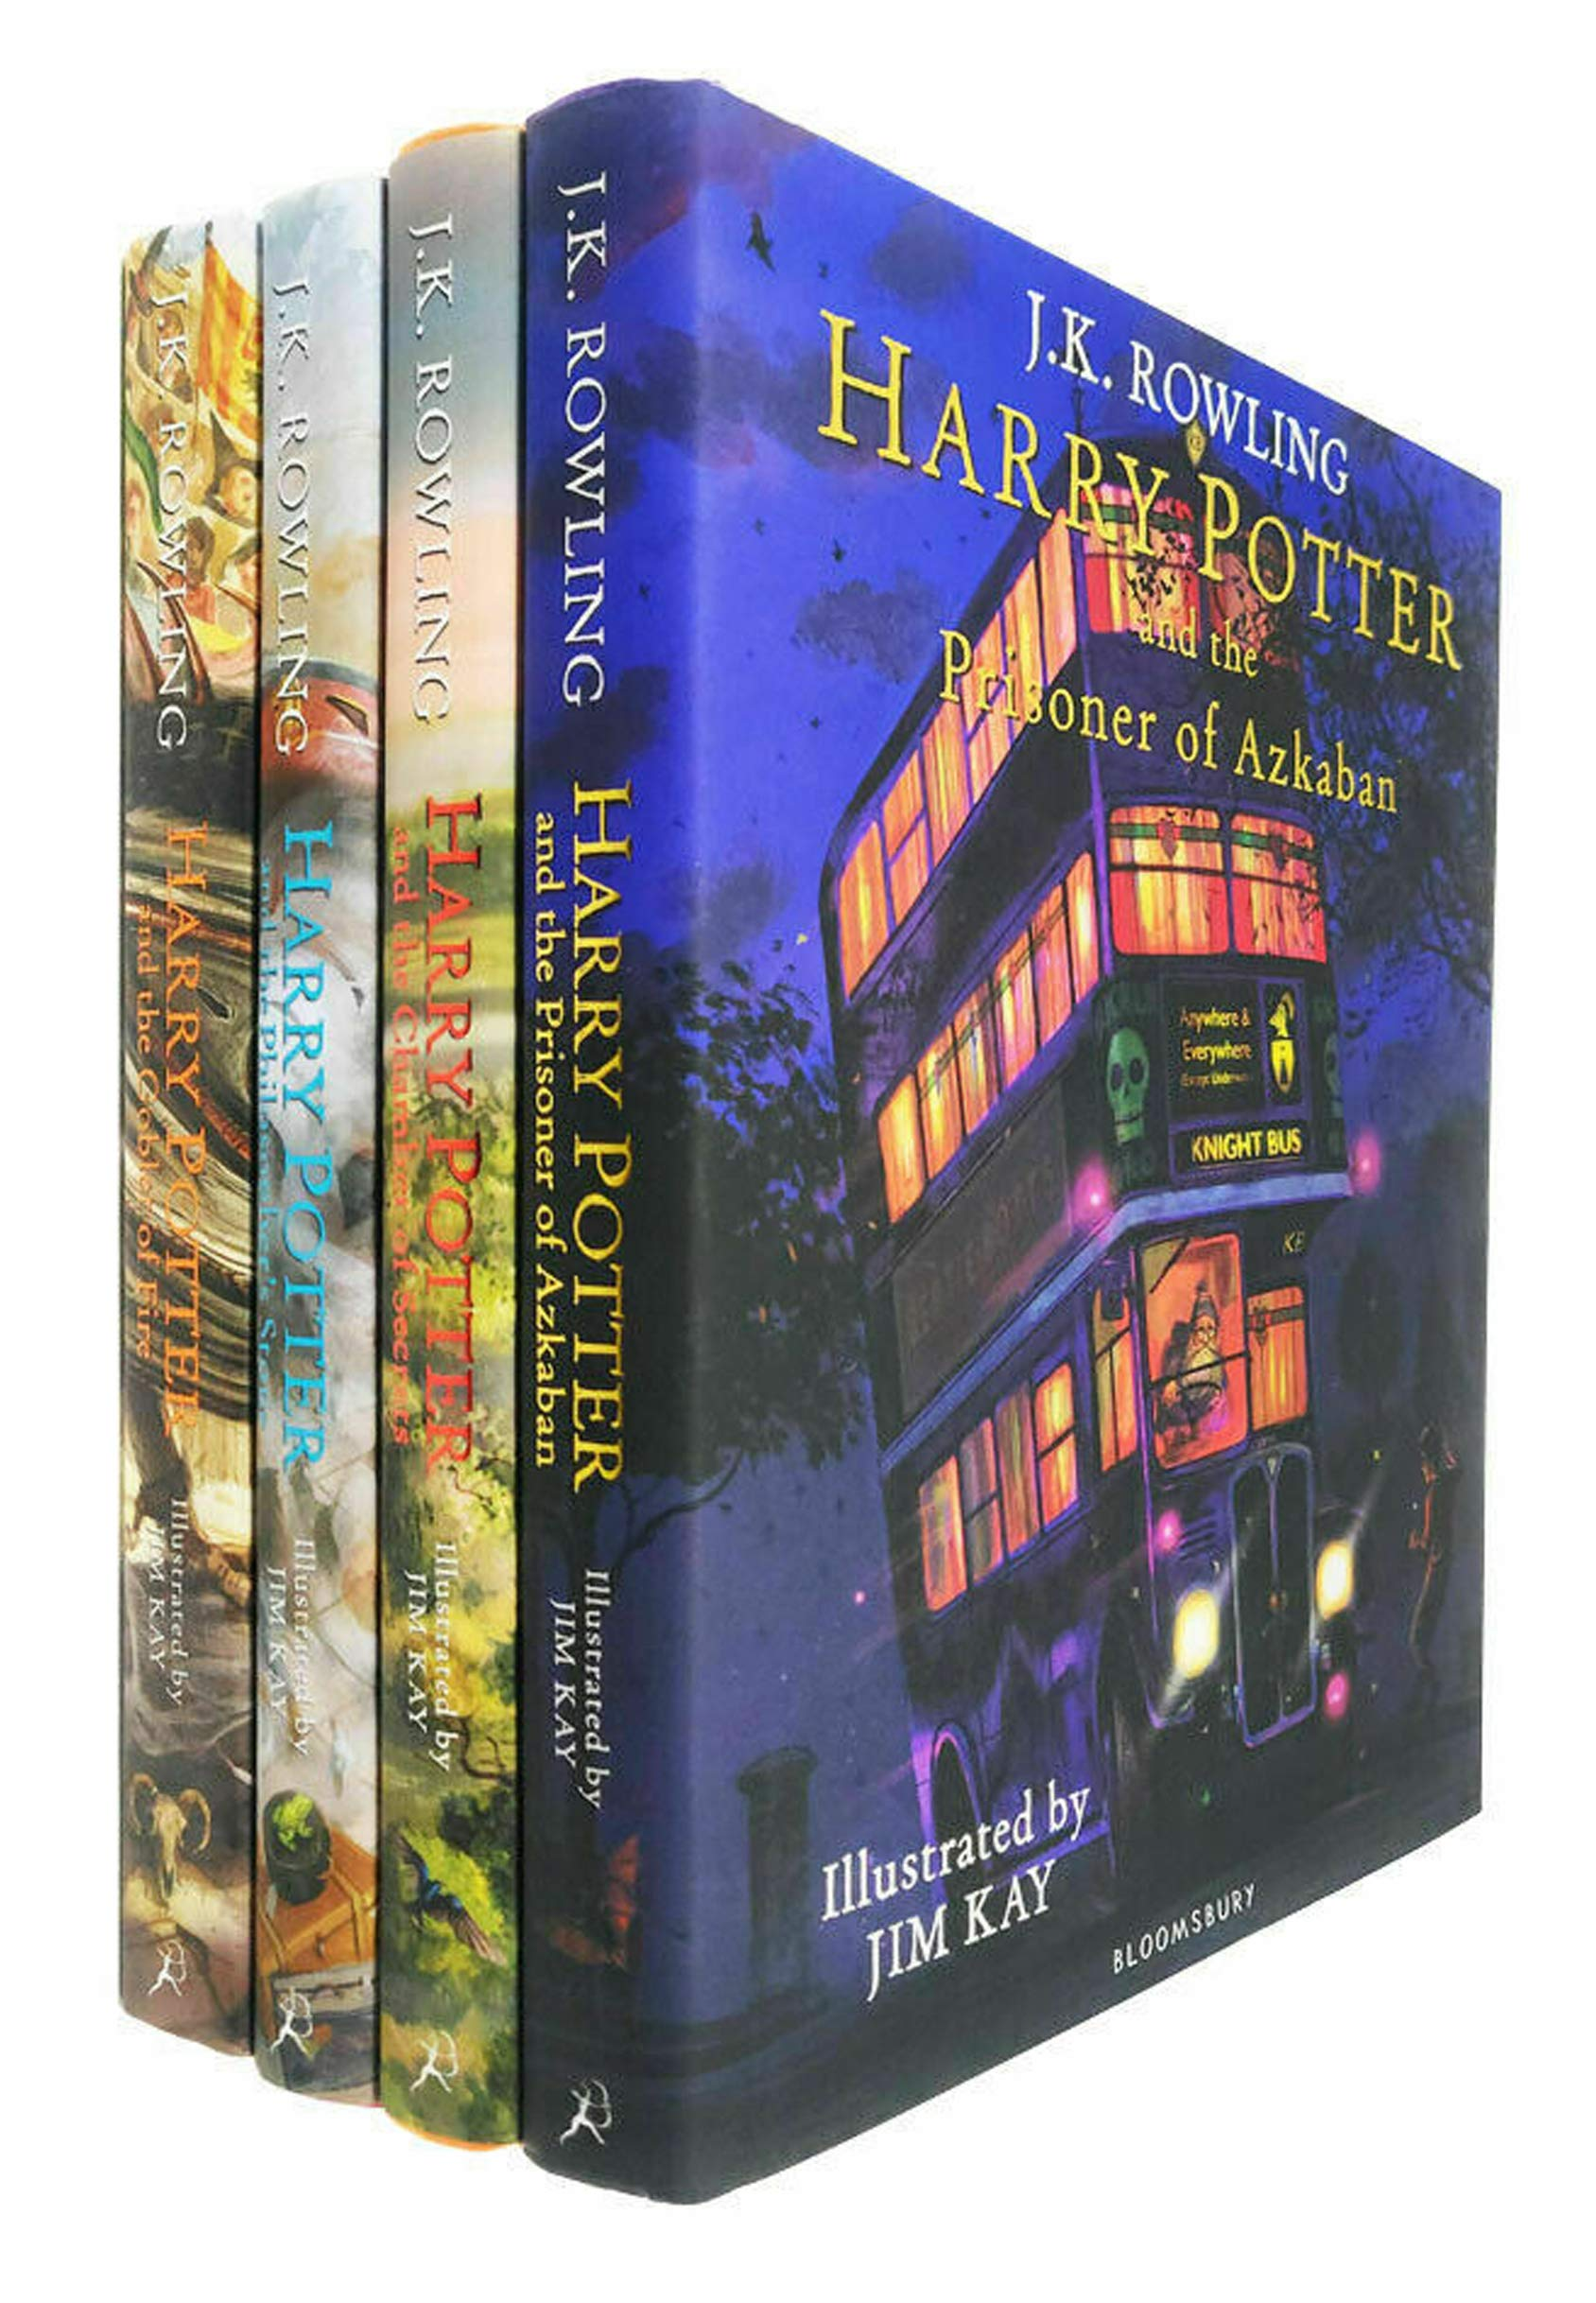 Harry Potter The Illustrated 4 Books Collection Set By JK Rowling – The Philosophers Stone, The Chamber of Secrets, The Prisoner of Azkaban, The Goblet of Fire